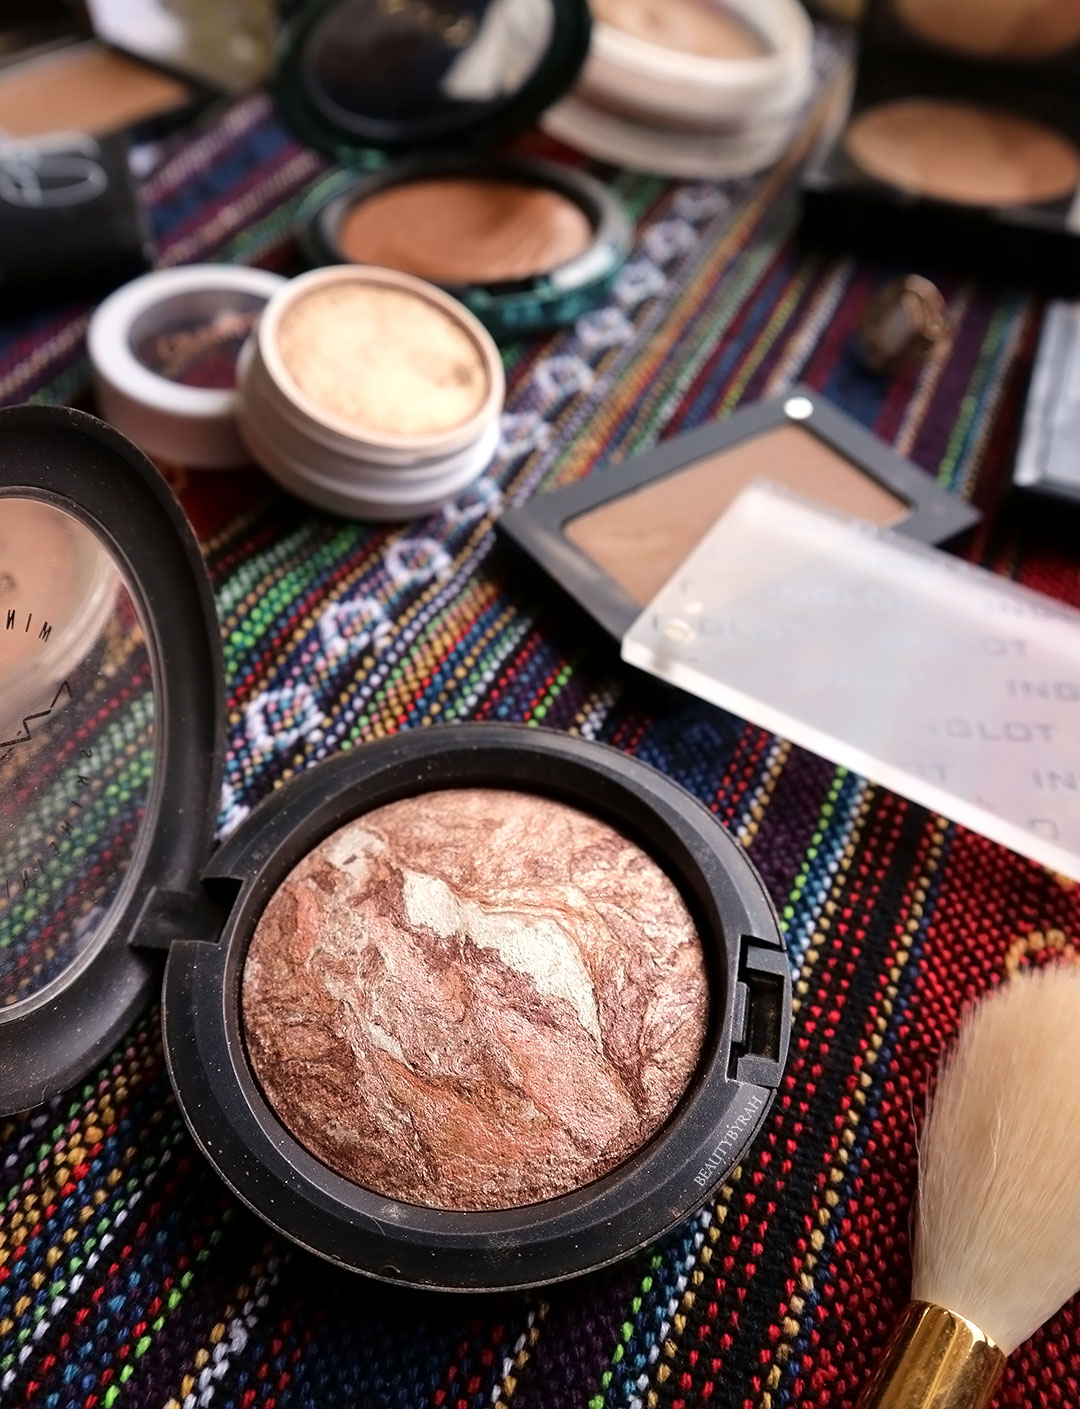 MAC Gold Spill Mineralize Skinfinish review and swatch